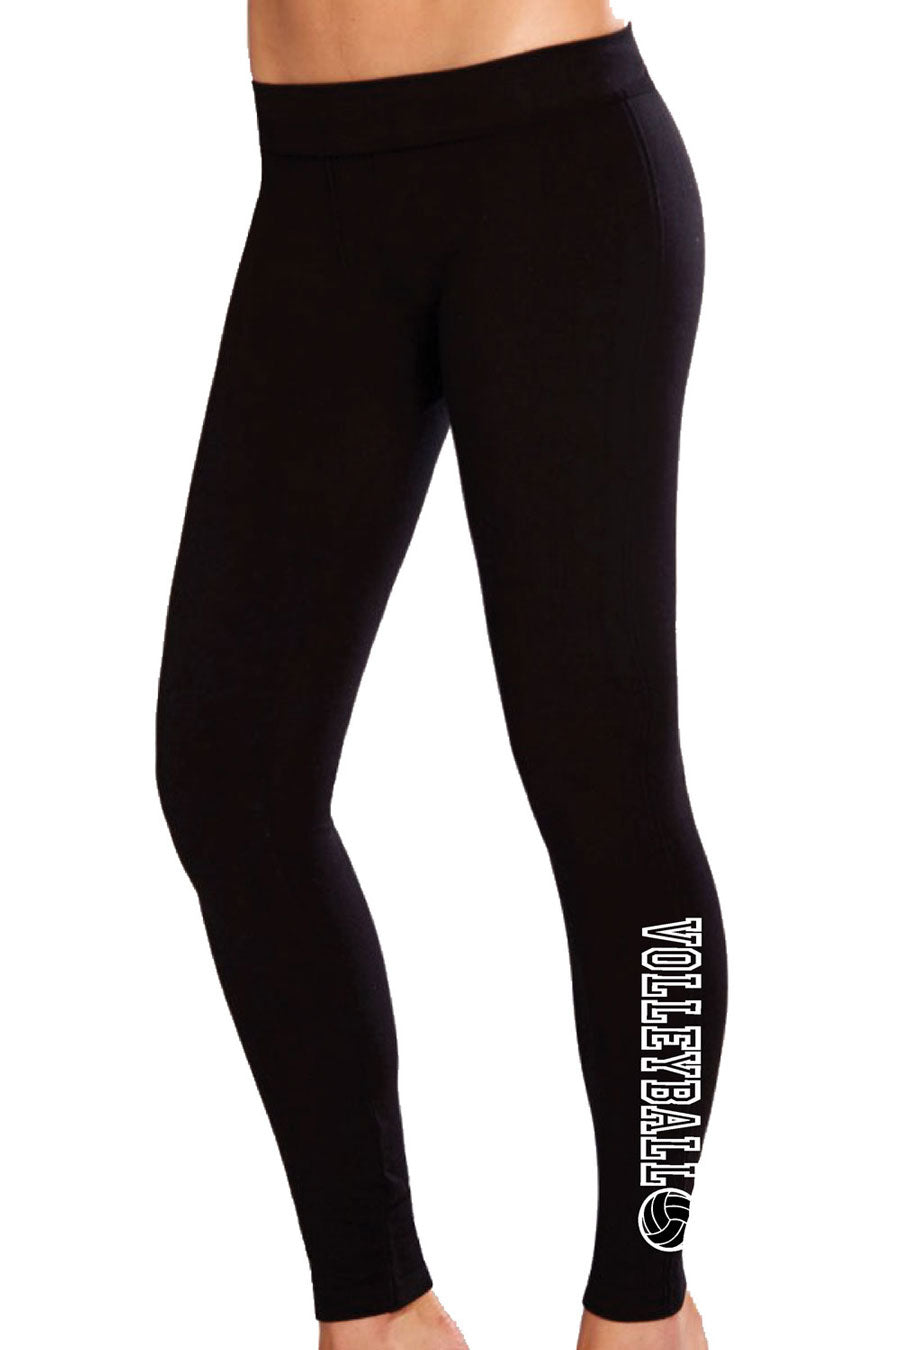 Volleyball Cotton Spandex Leggings